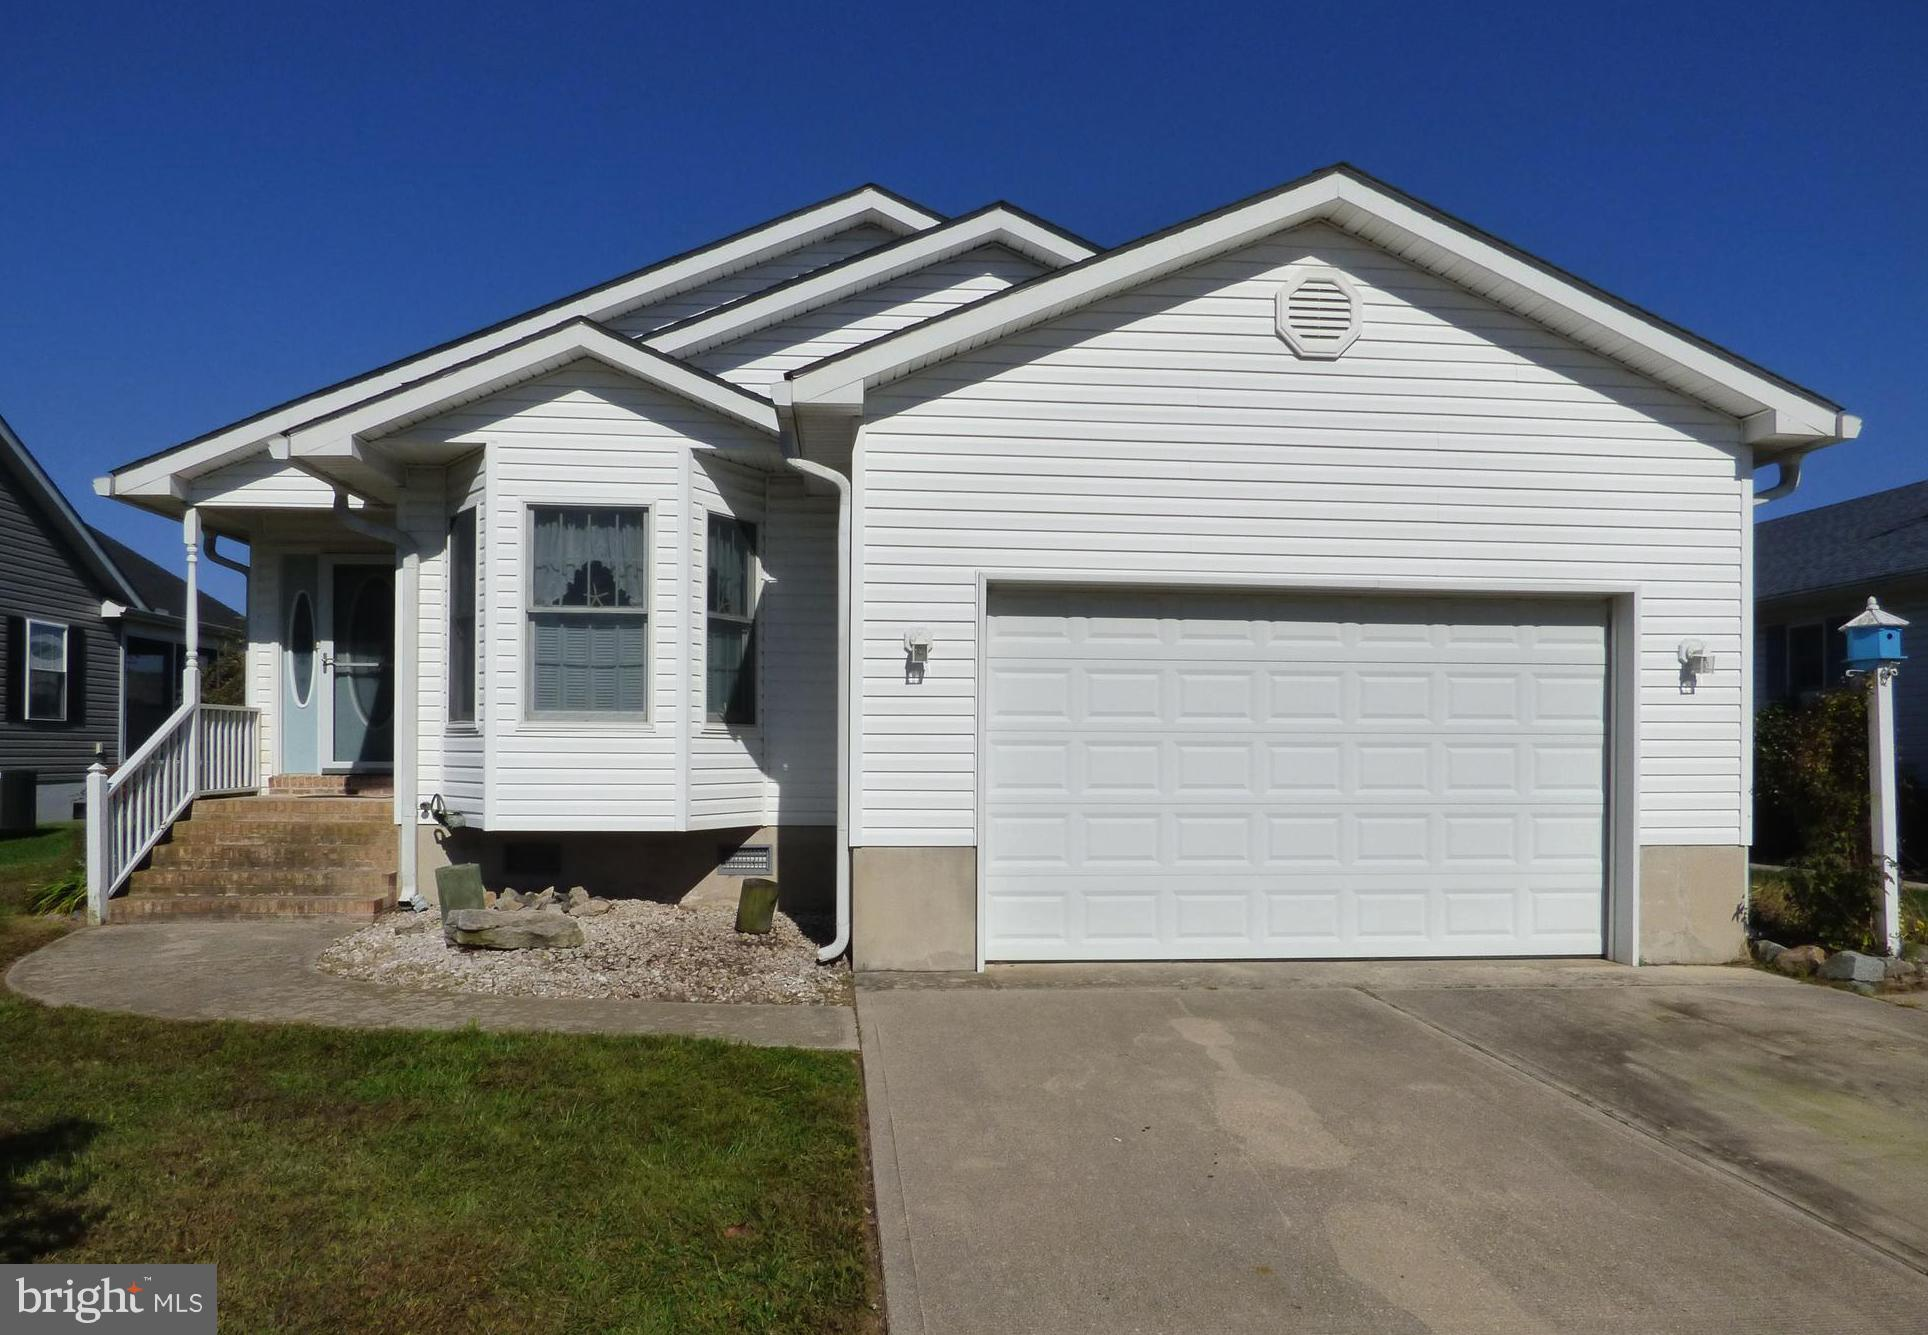 Enjoy easy one level living in this coastal ranch style home featuring 3 bedrooms, 2 full baths, eat